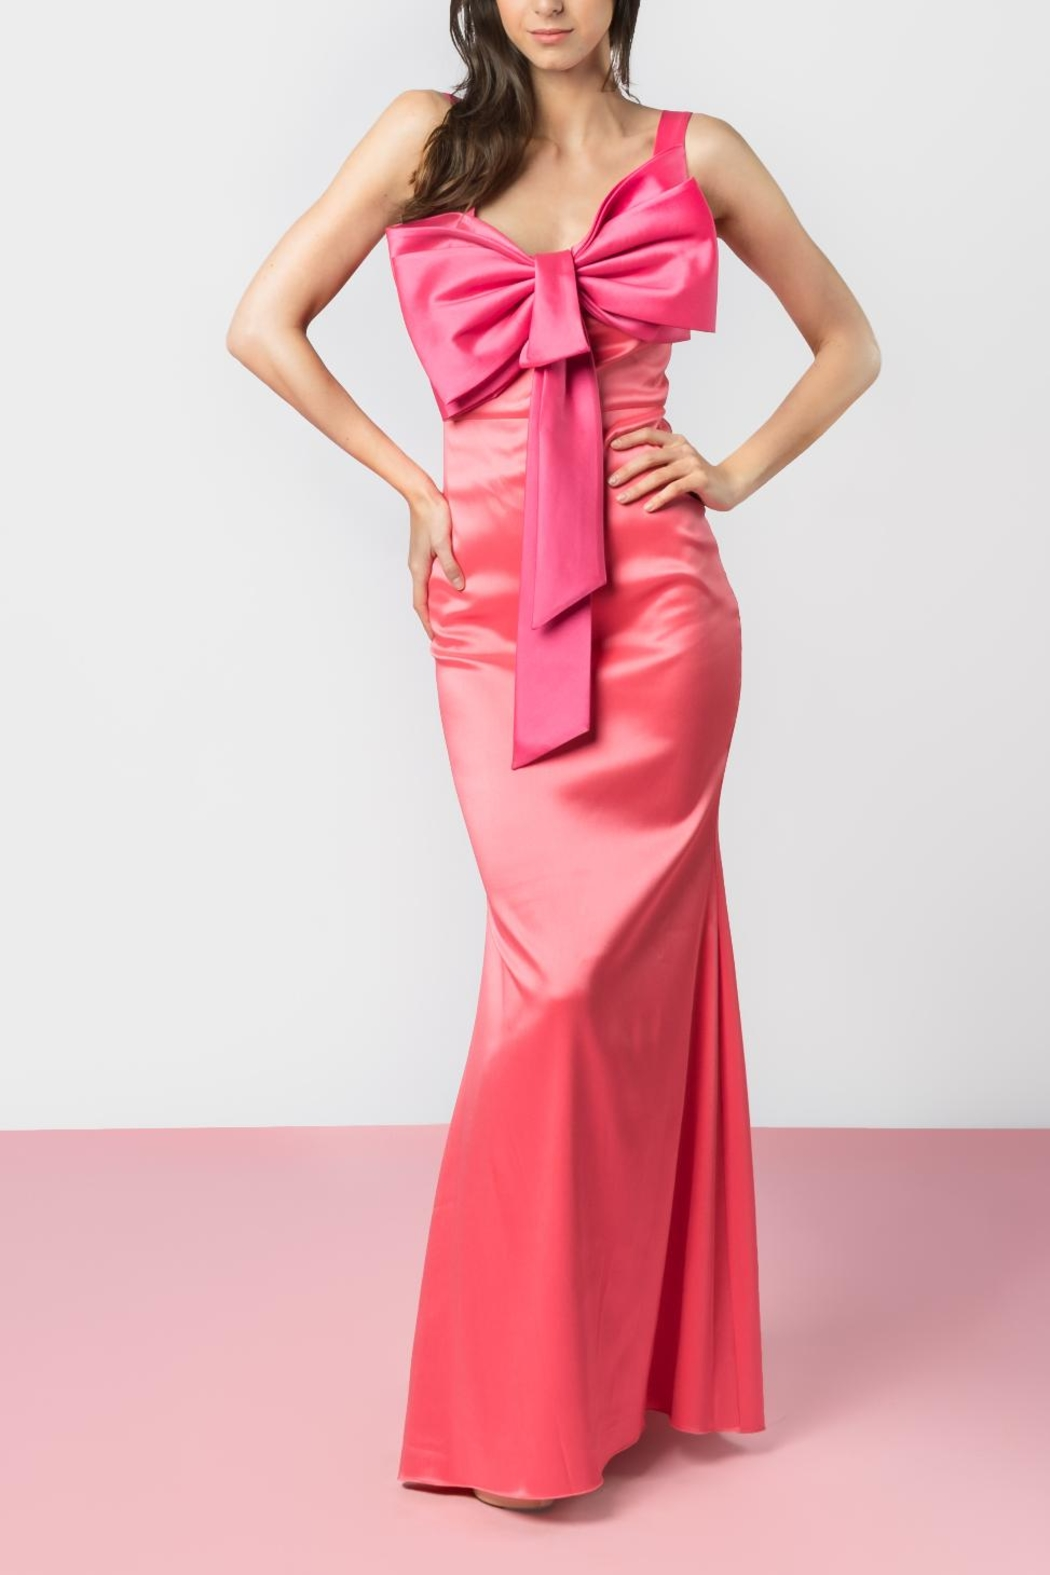 Badgley Mischka Pink Bow Dress from Monterrey by Mona Mour — Shoptiques